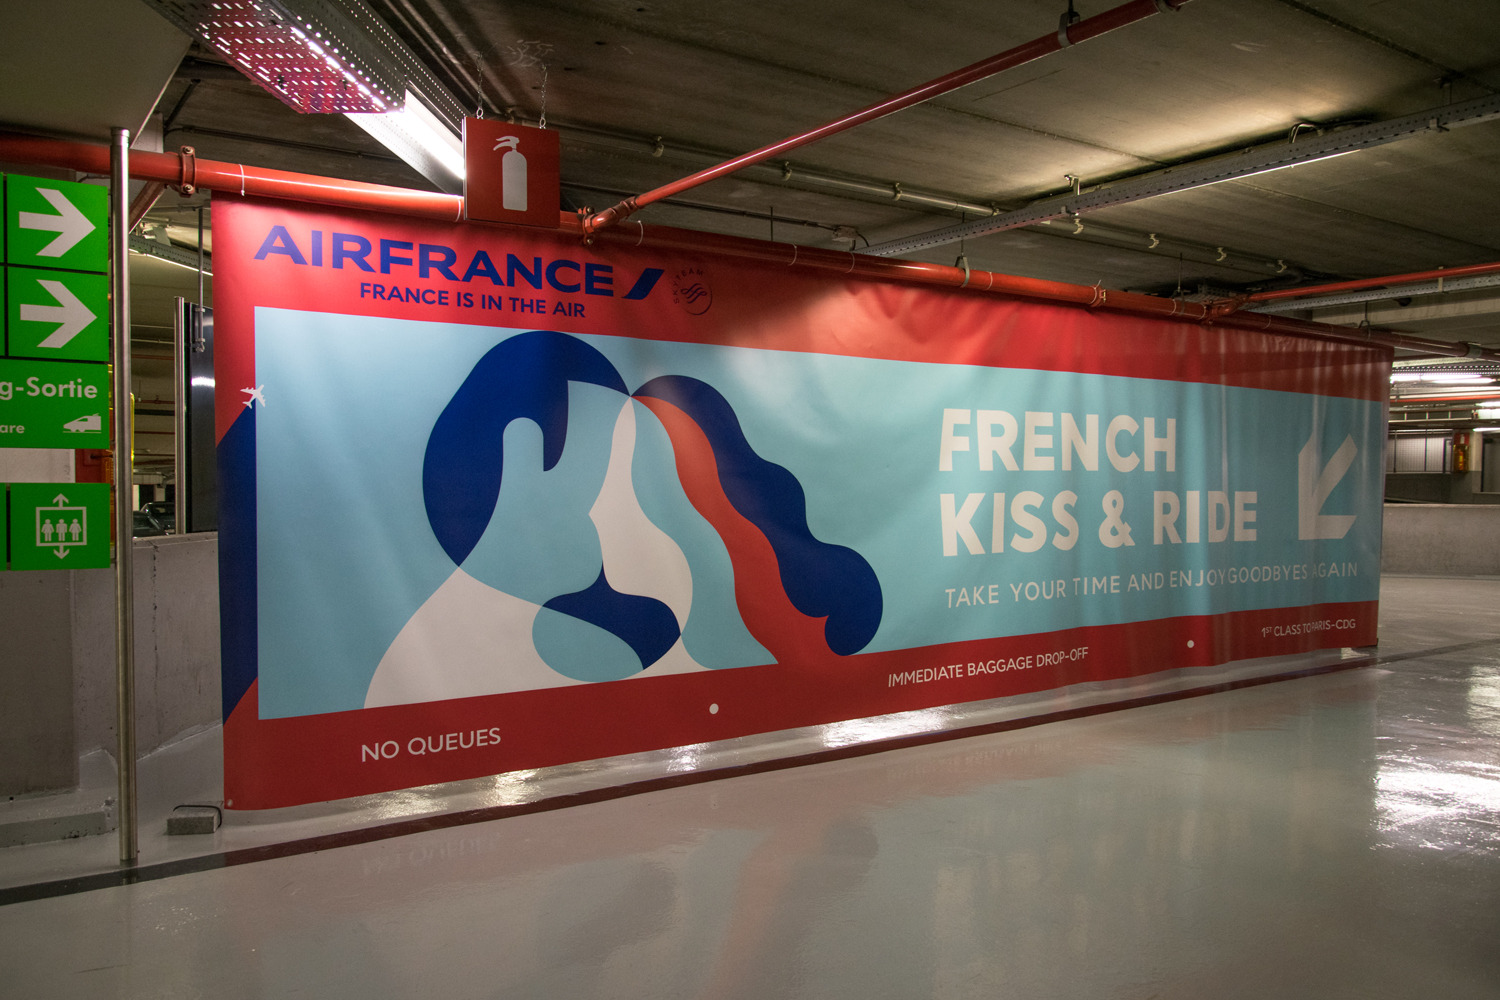 Air France Campaign Visuals